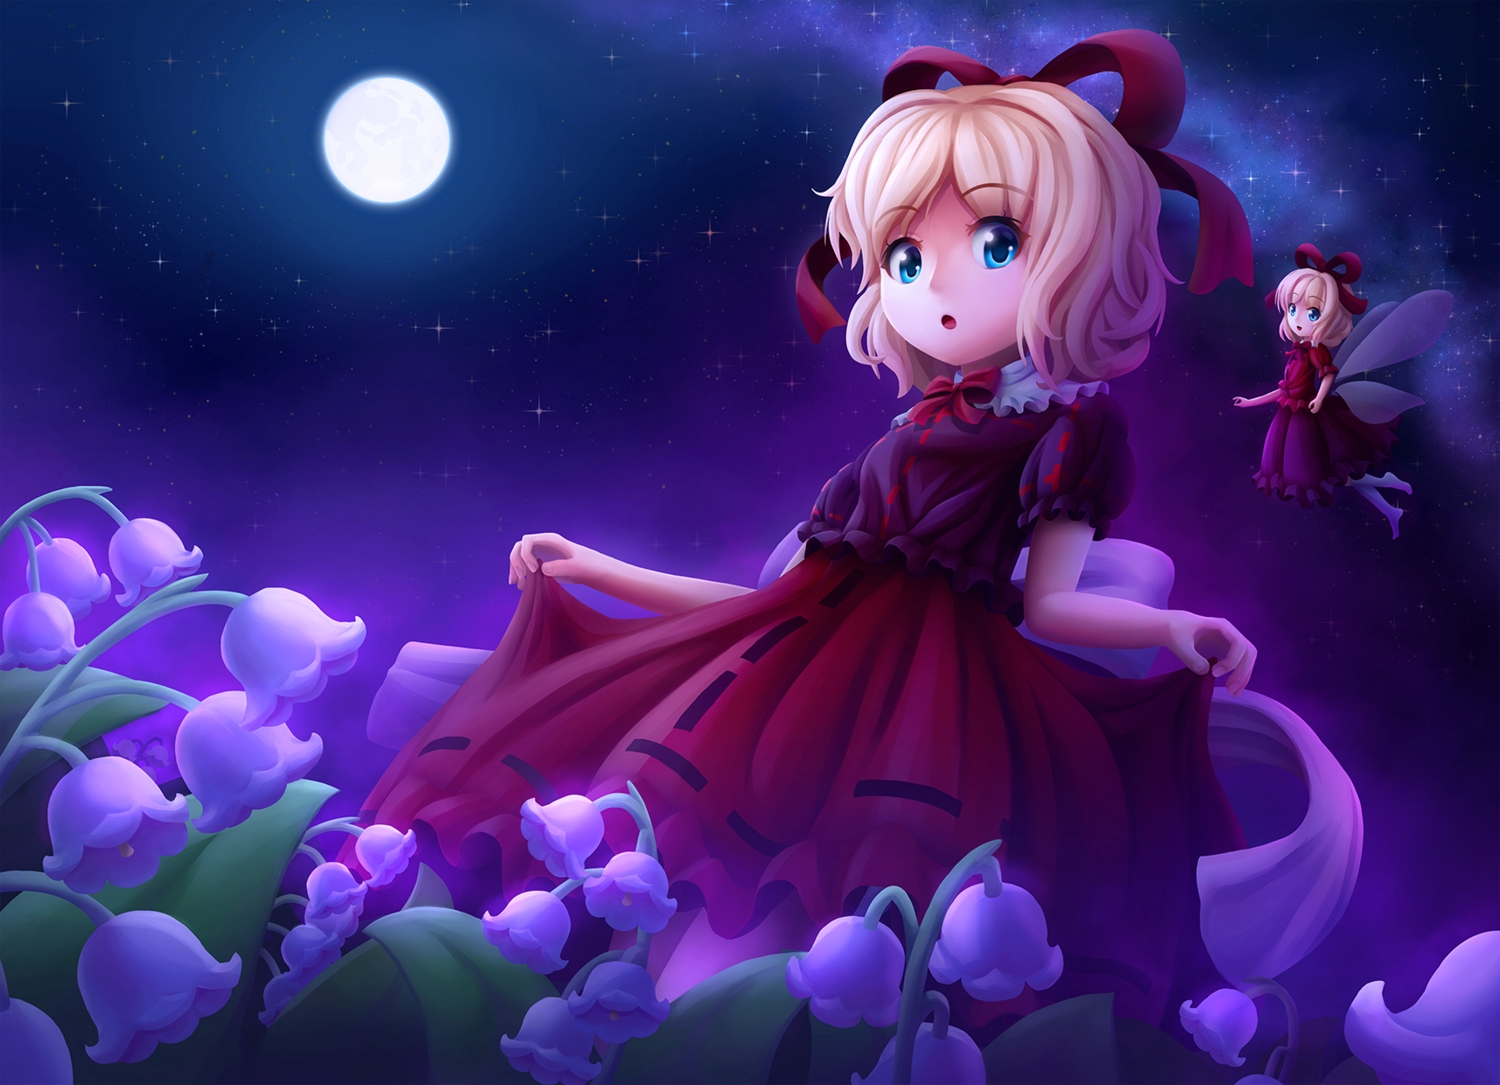 aqua_eyes blonde_hair bow dress fairy loli medicine_melancholy moon night short_hair skirt_lift sky solmyr2000 stars su-san touhou wings